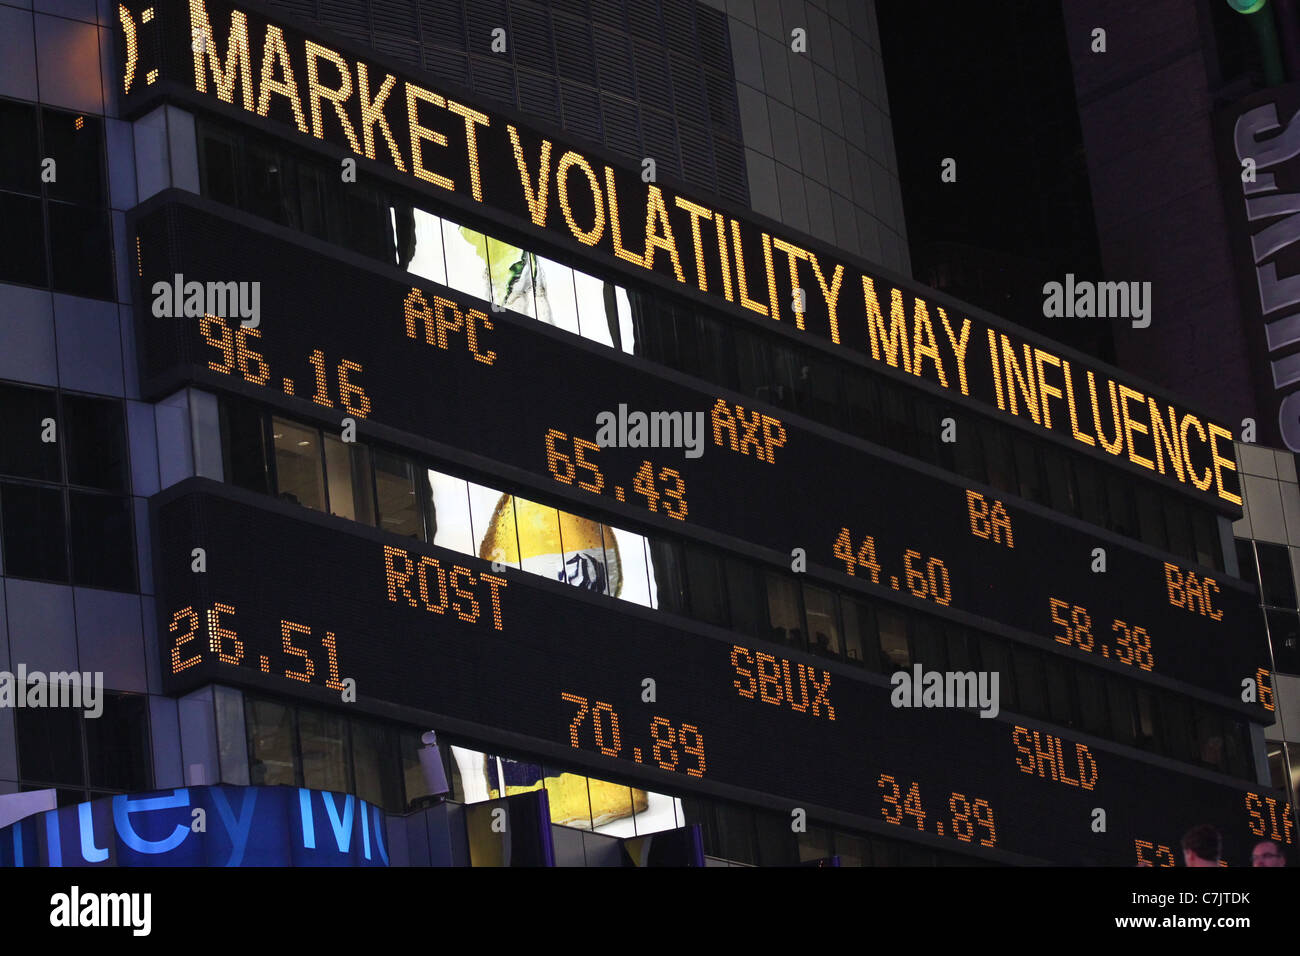 Illuminated stock market board in New York City Stock Photo